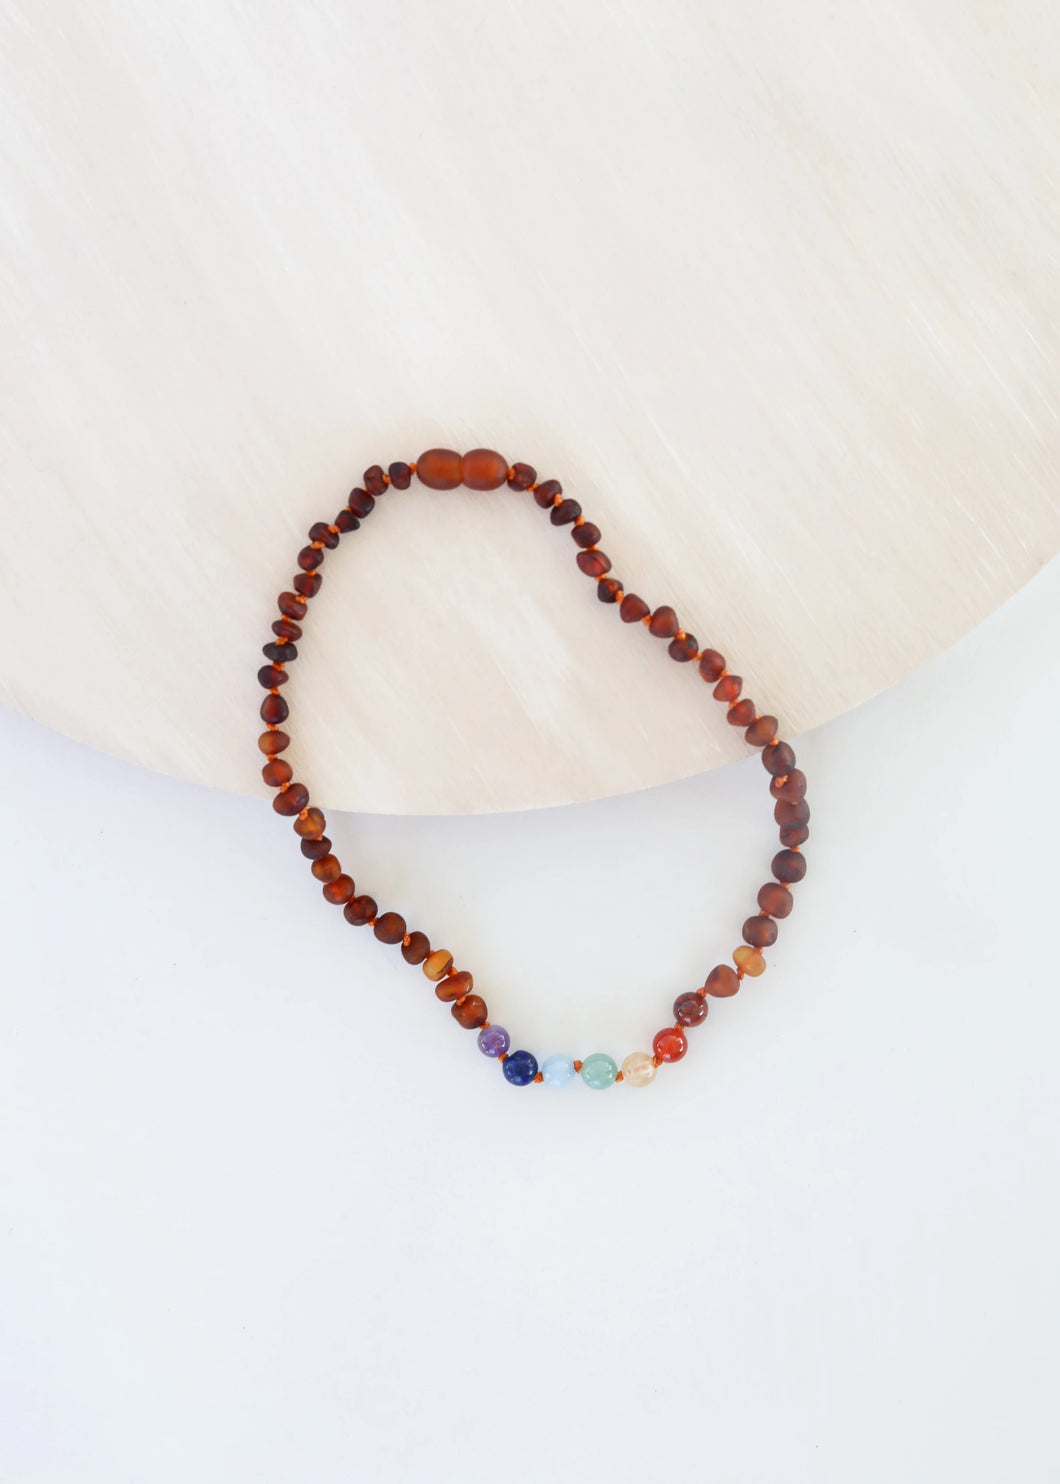 Raw Baltic Sea Amber + Chakra Crystals  Rainbow Necklace